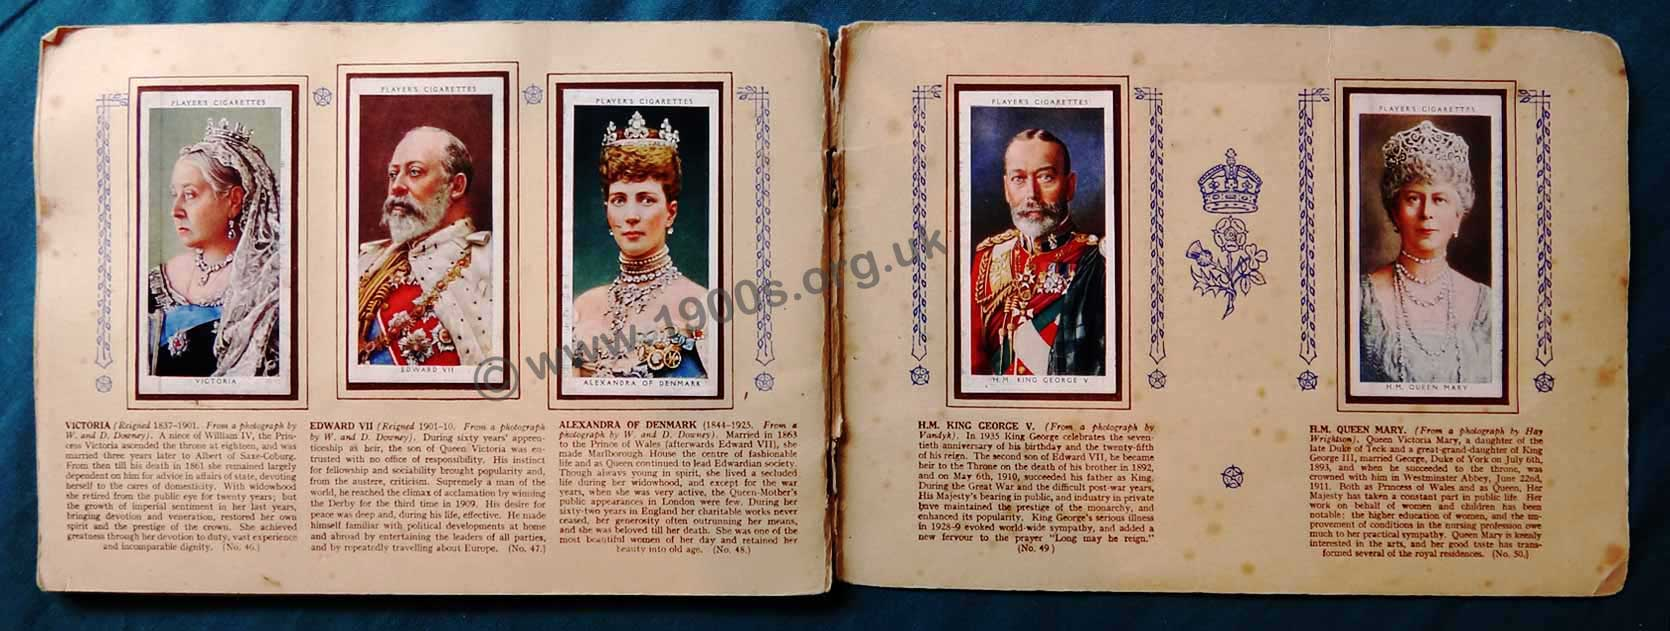 Large image of a double page spread of a 1930s cigarette card album put up by Players Cigarettes with the theme of English kings and queens 1066-1939.